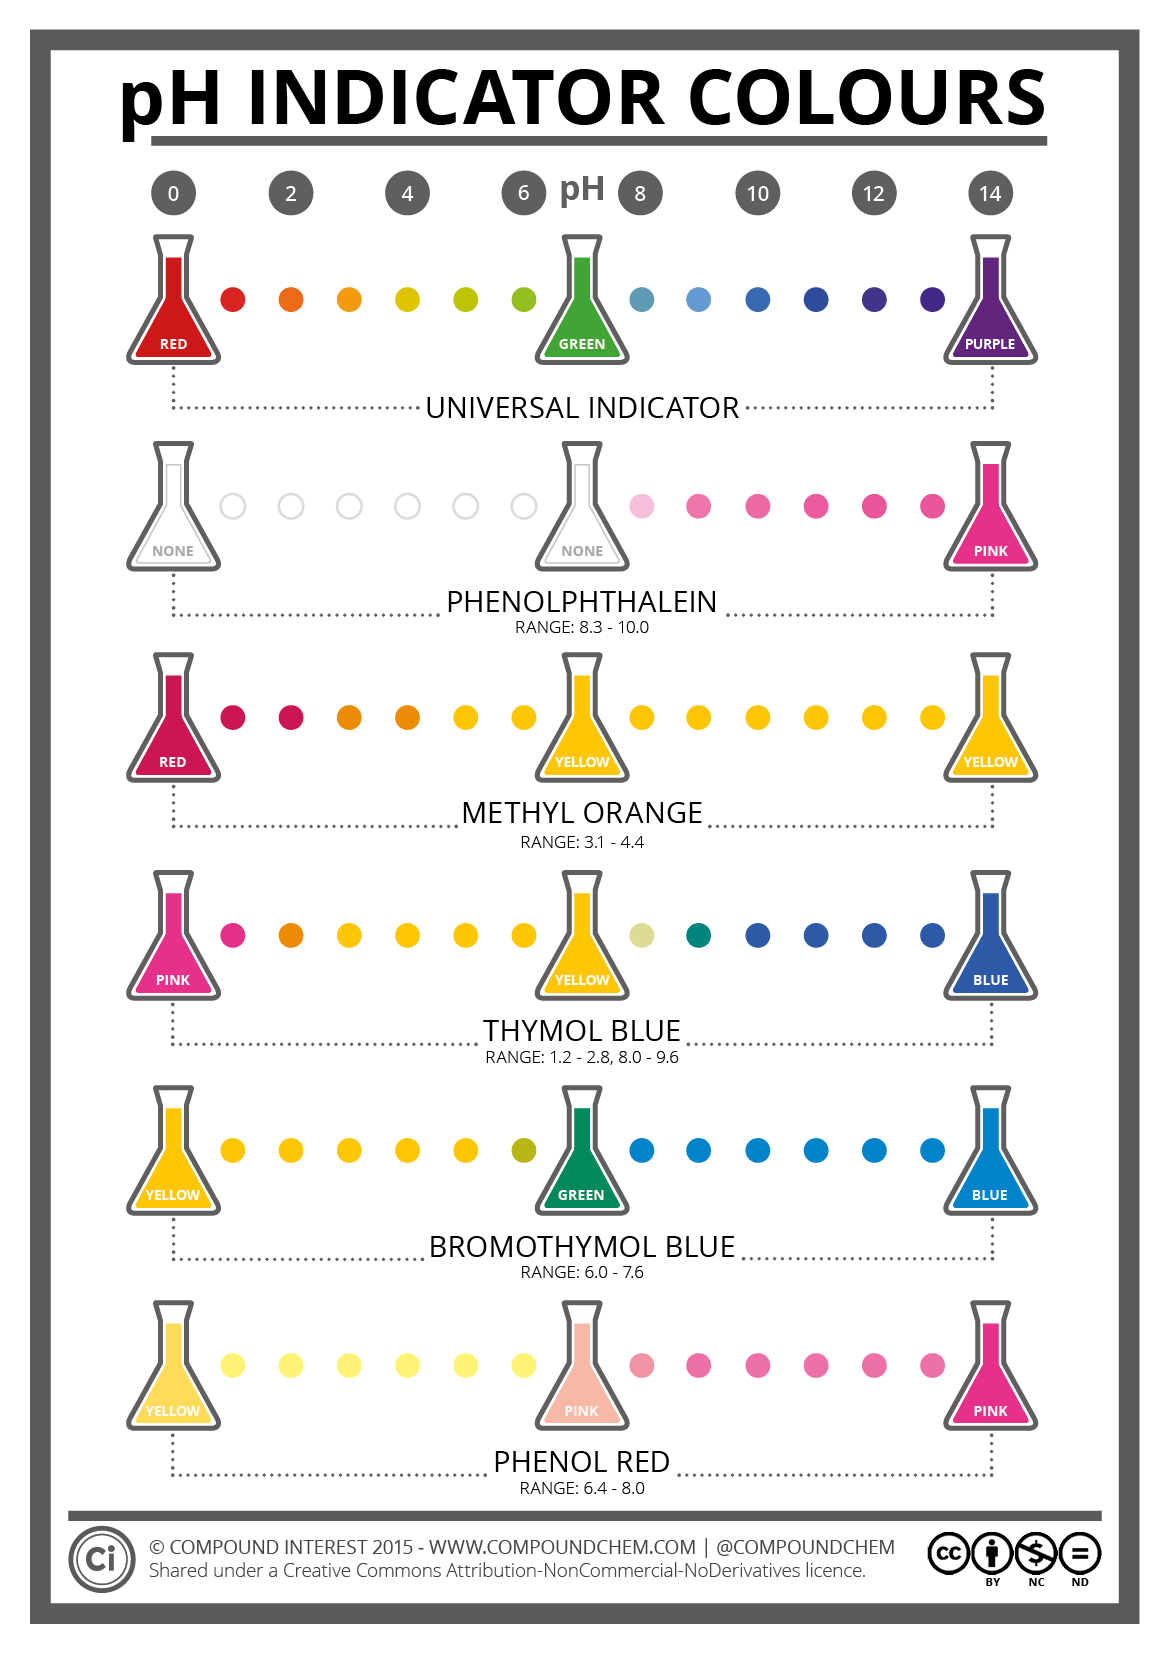 The Colours Amp Chemistry Of Ph Indicators Compound Interest